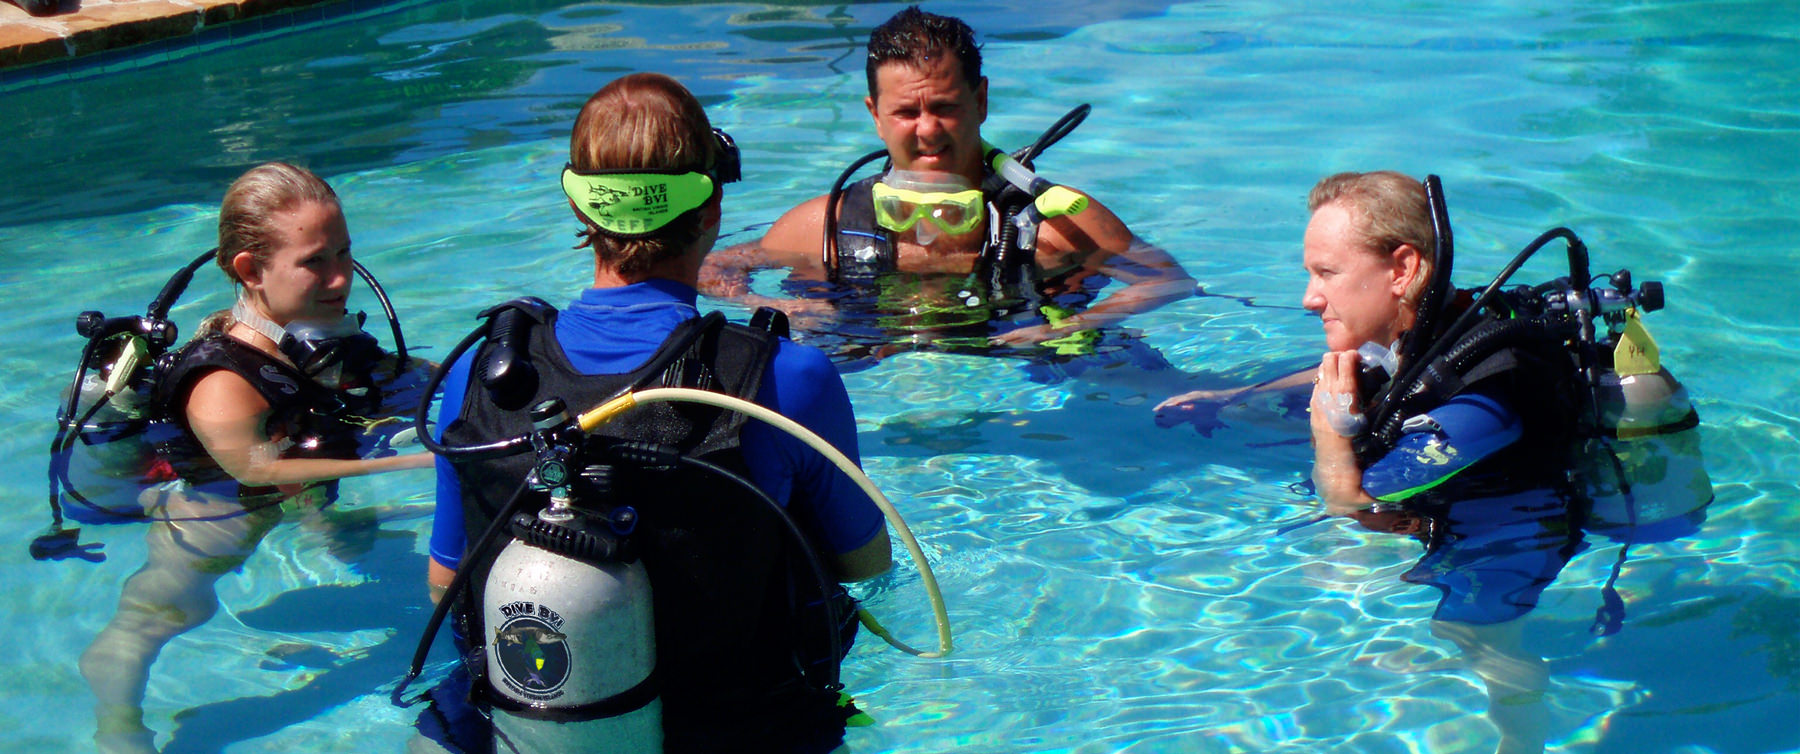 Scuba training class in pool